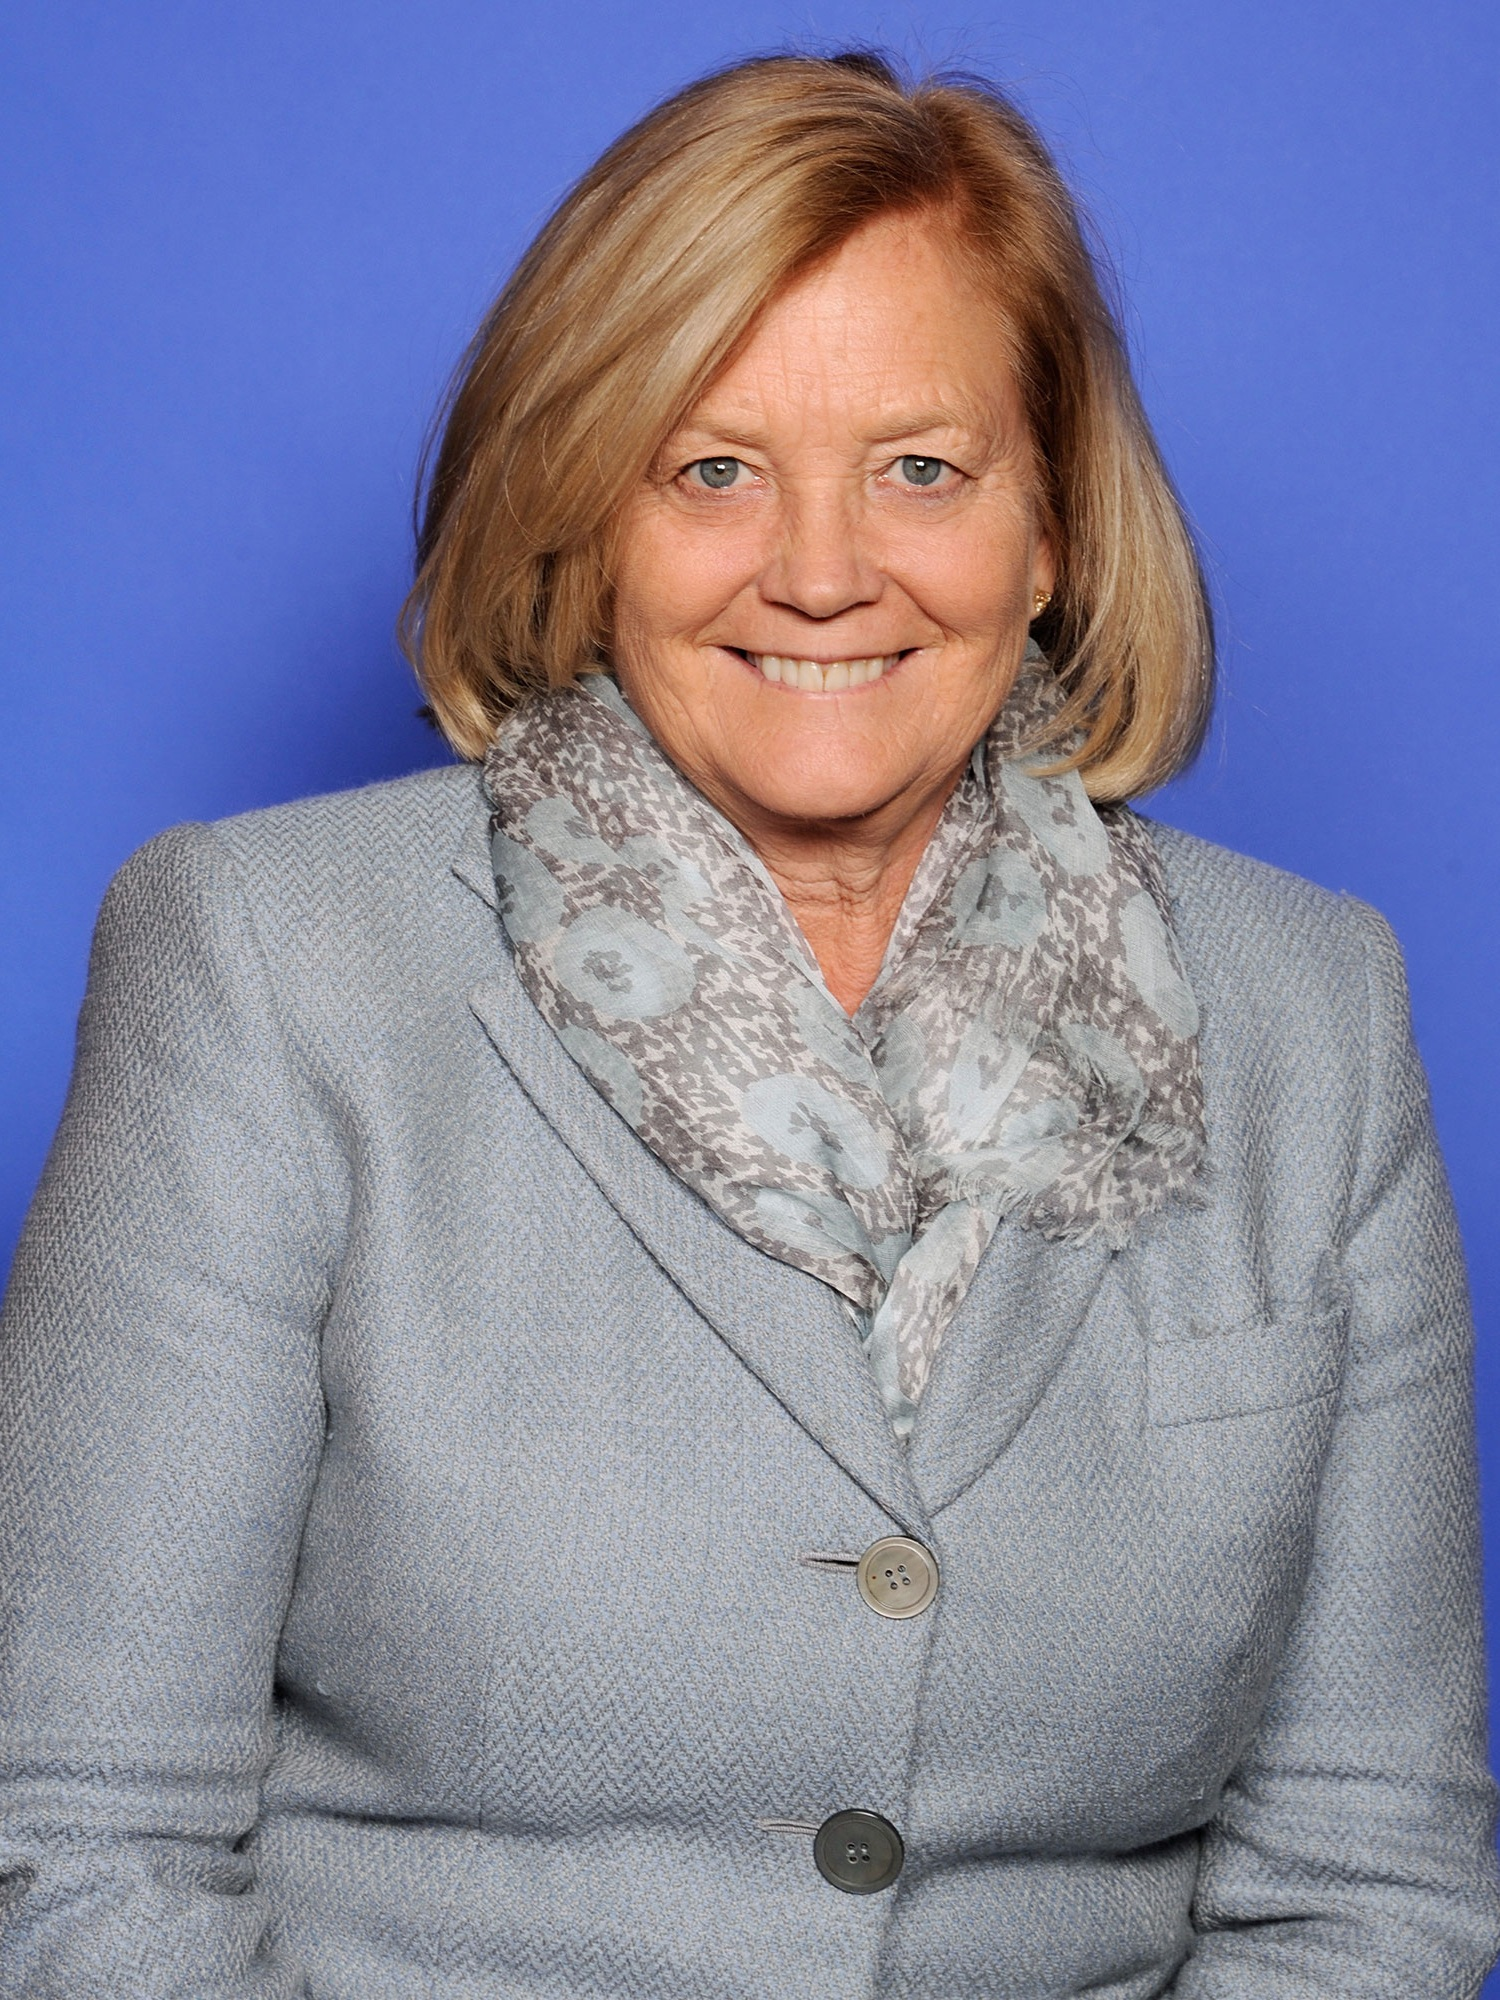 Rep. Chellie Pingree (D) - District 1Phone: (202) 225-6116Website: https://pingree.house.gov/contact/contactform.htm